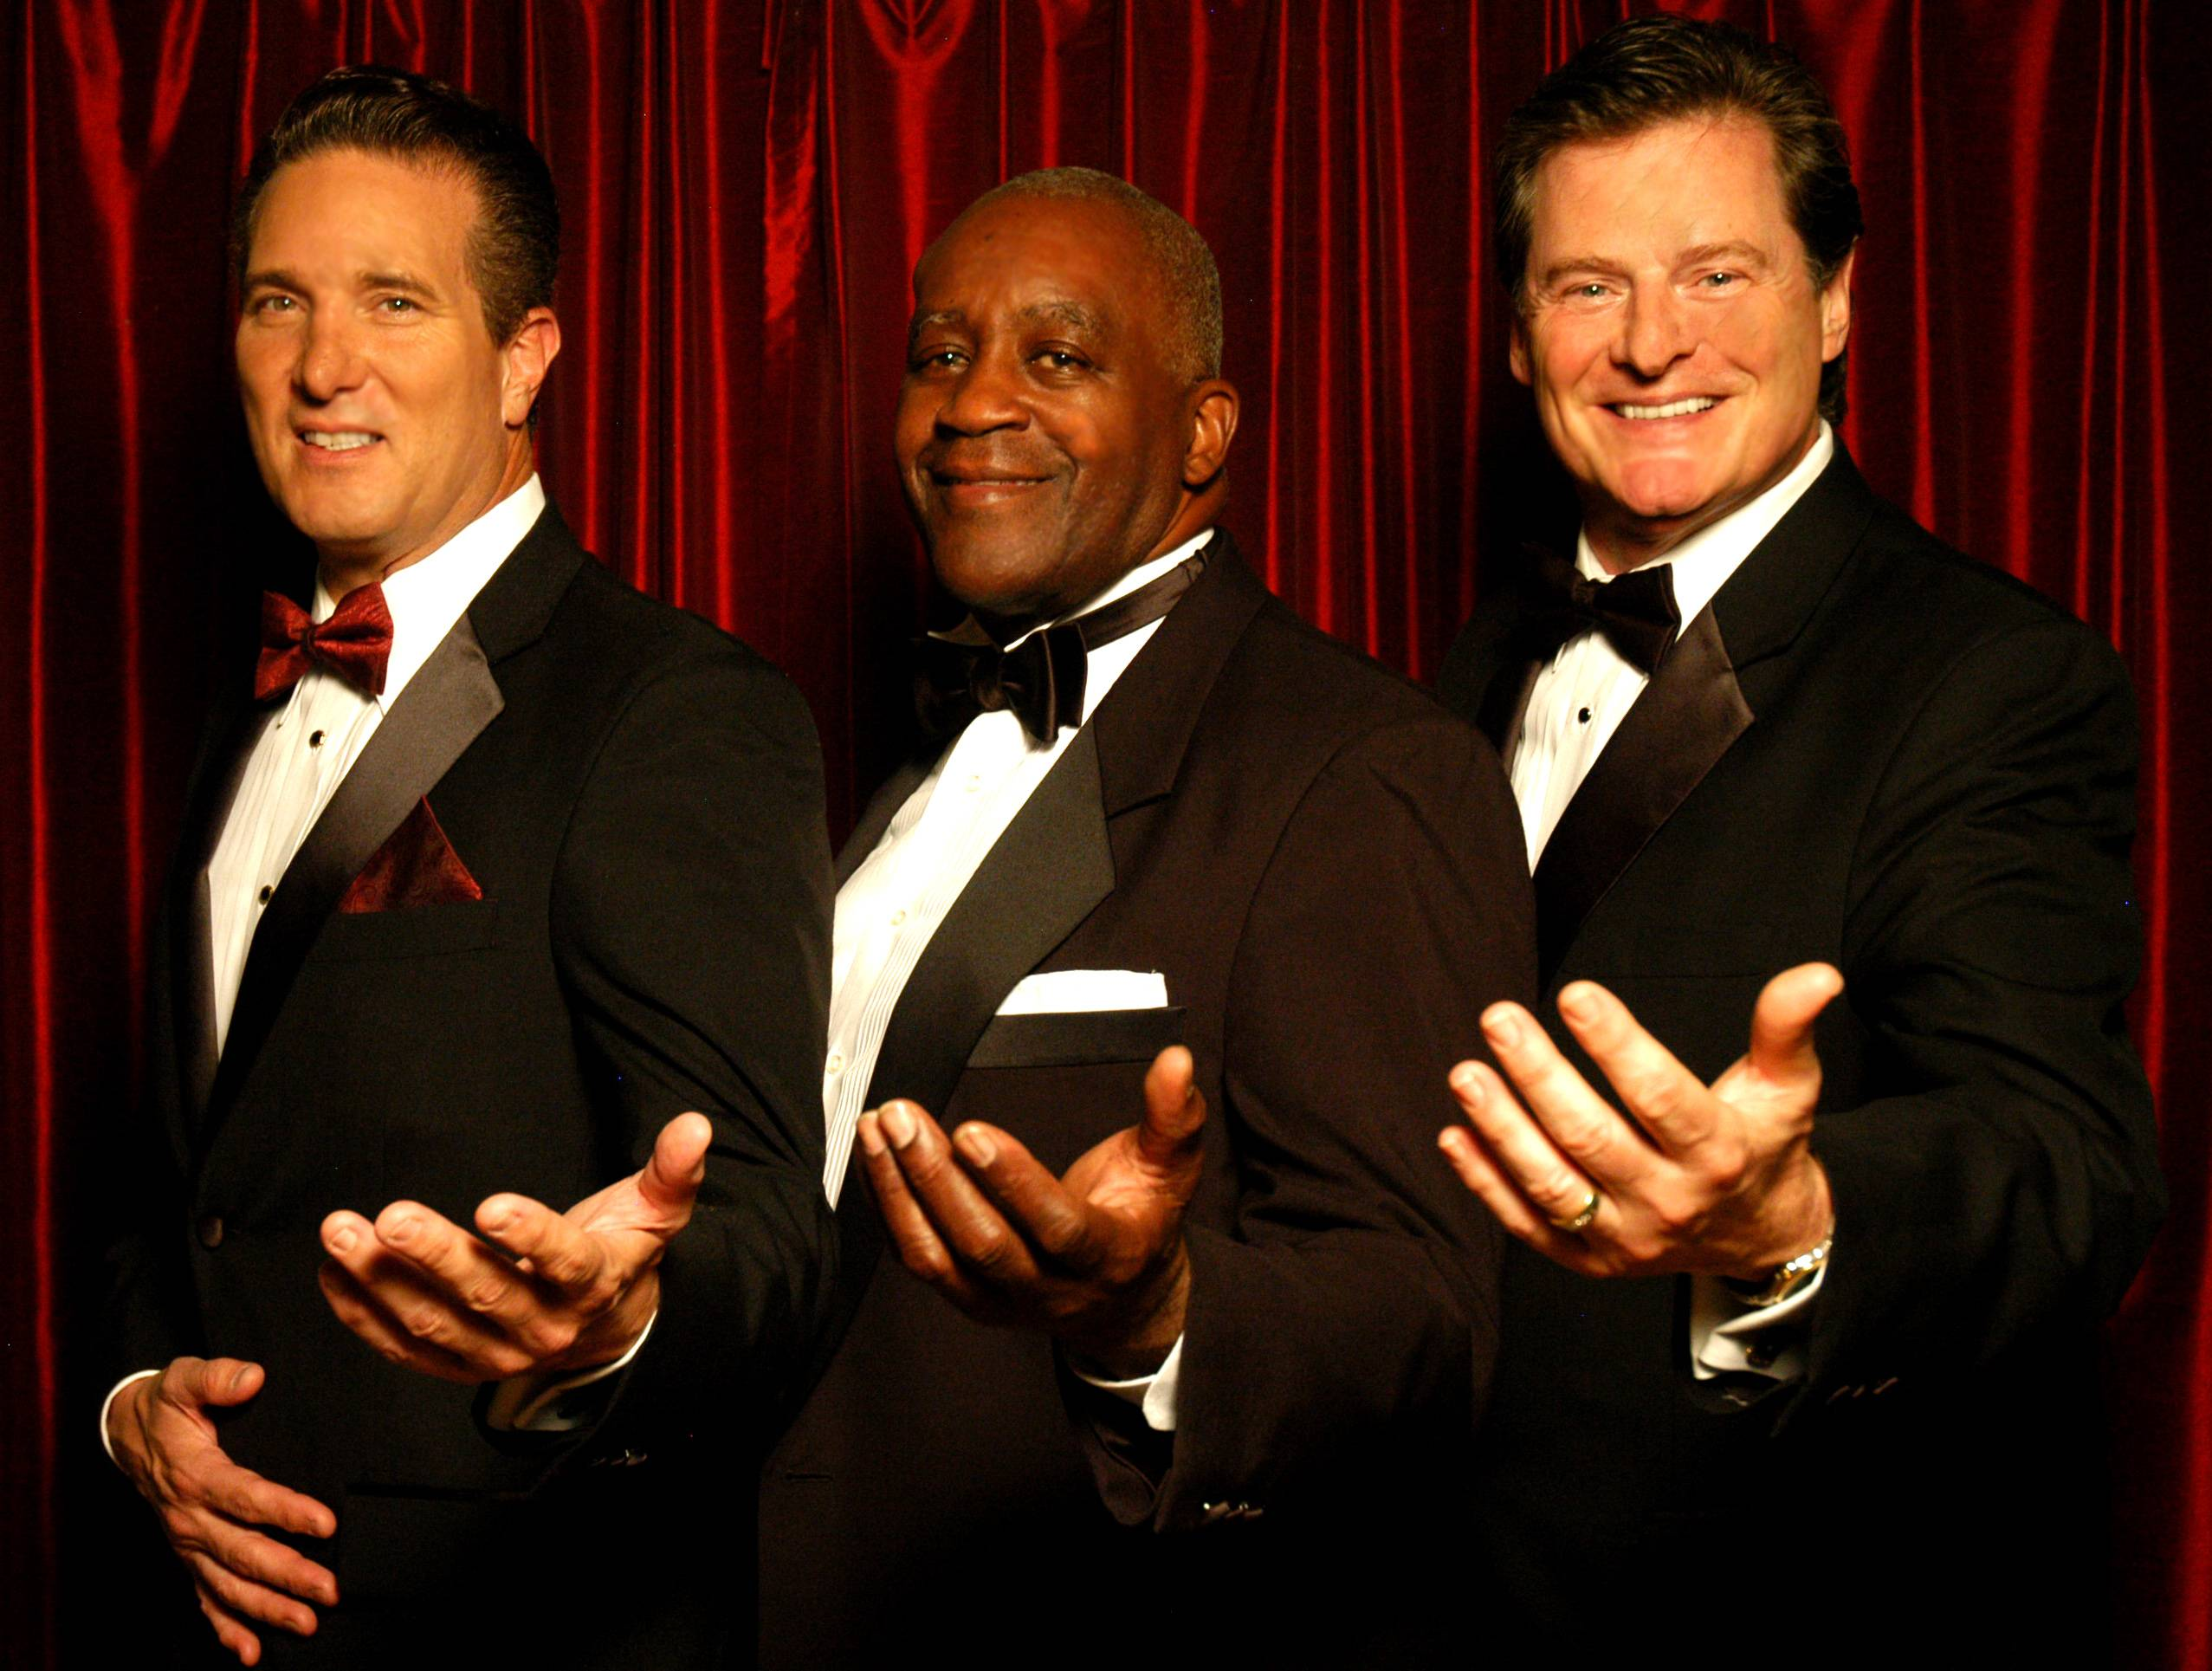 The Rat Pack Show | The Rat Pack Tribute | Sinatra and Friends Rat Pack Impersonators